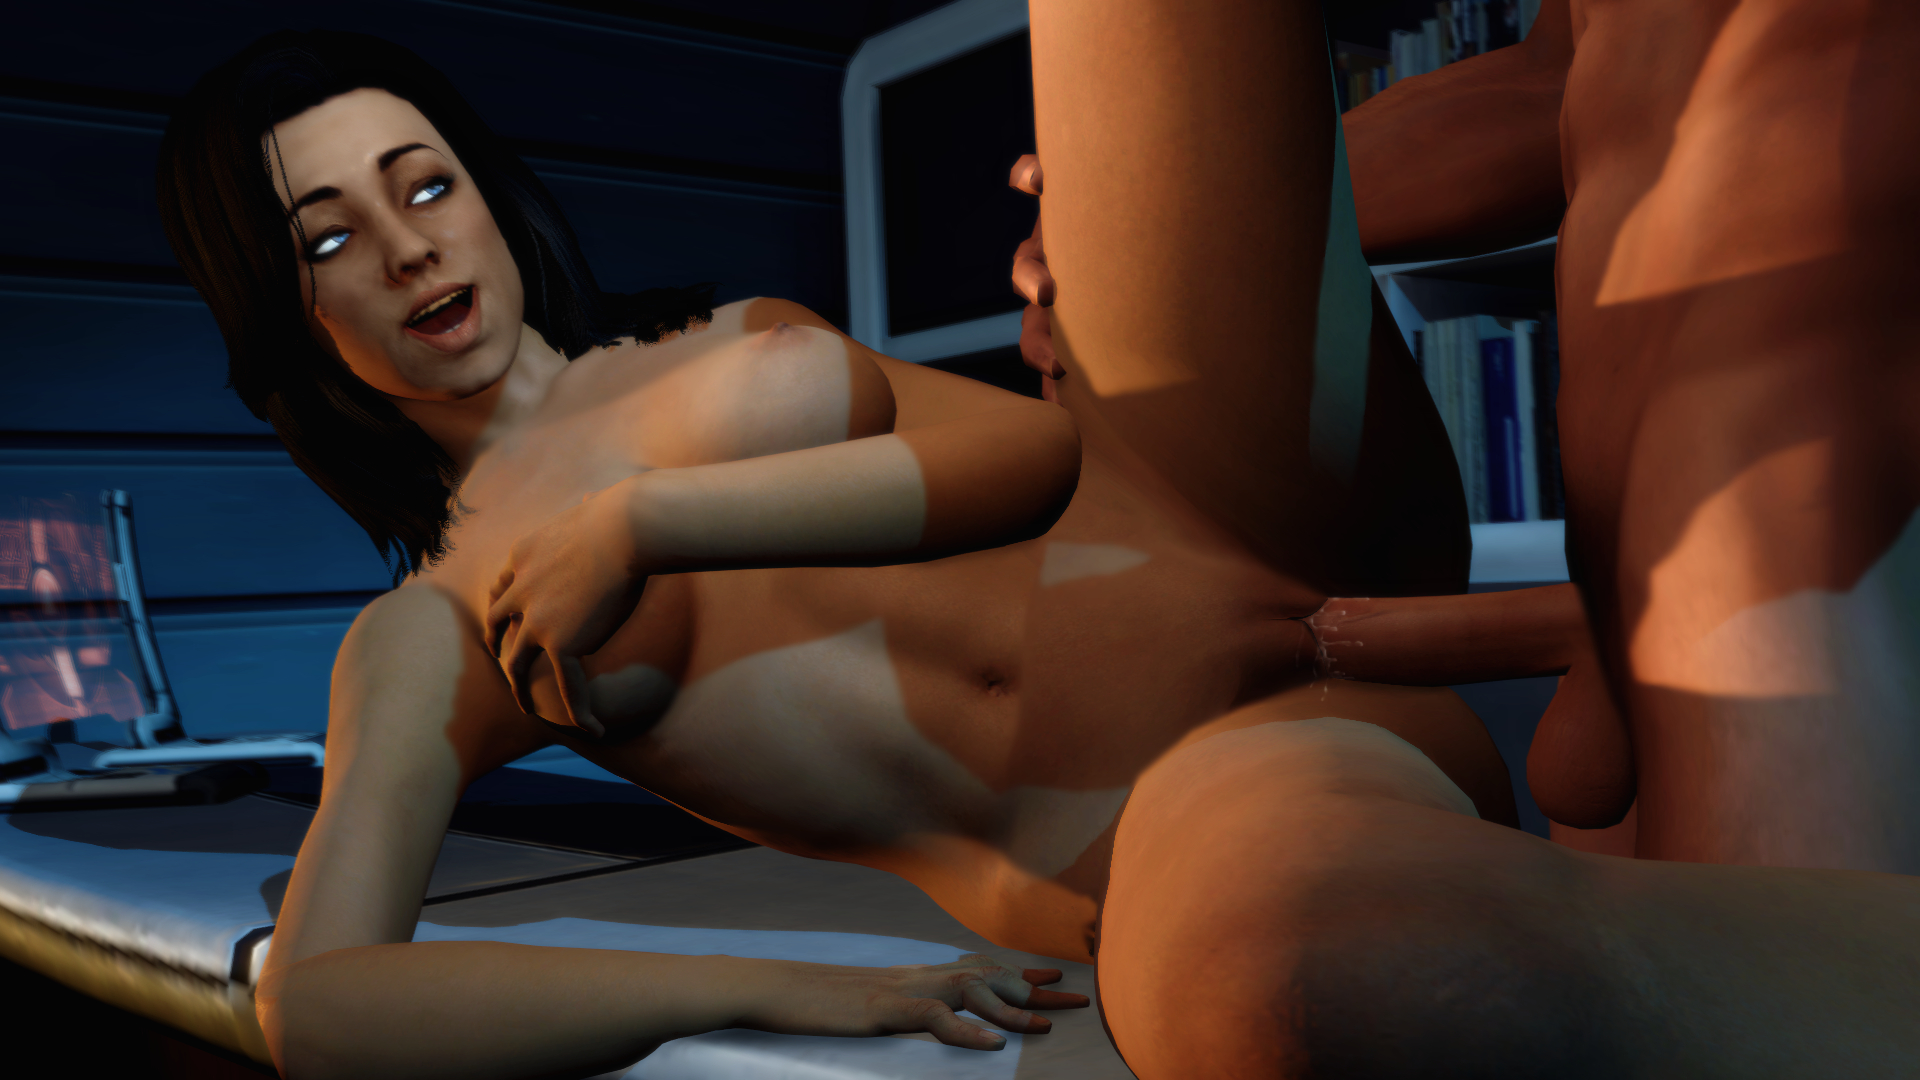 Mass effect female character porn mod erotica videos